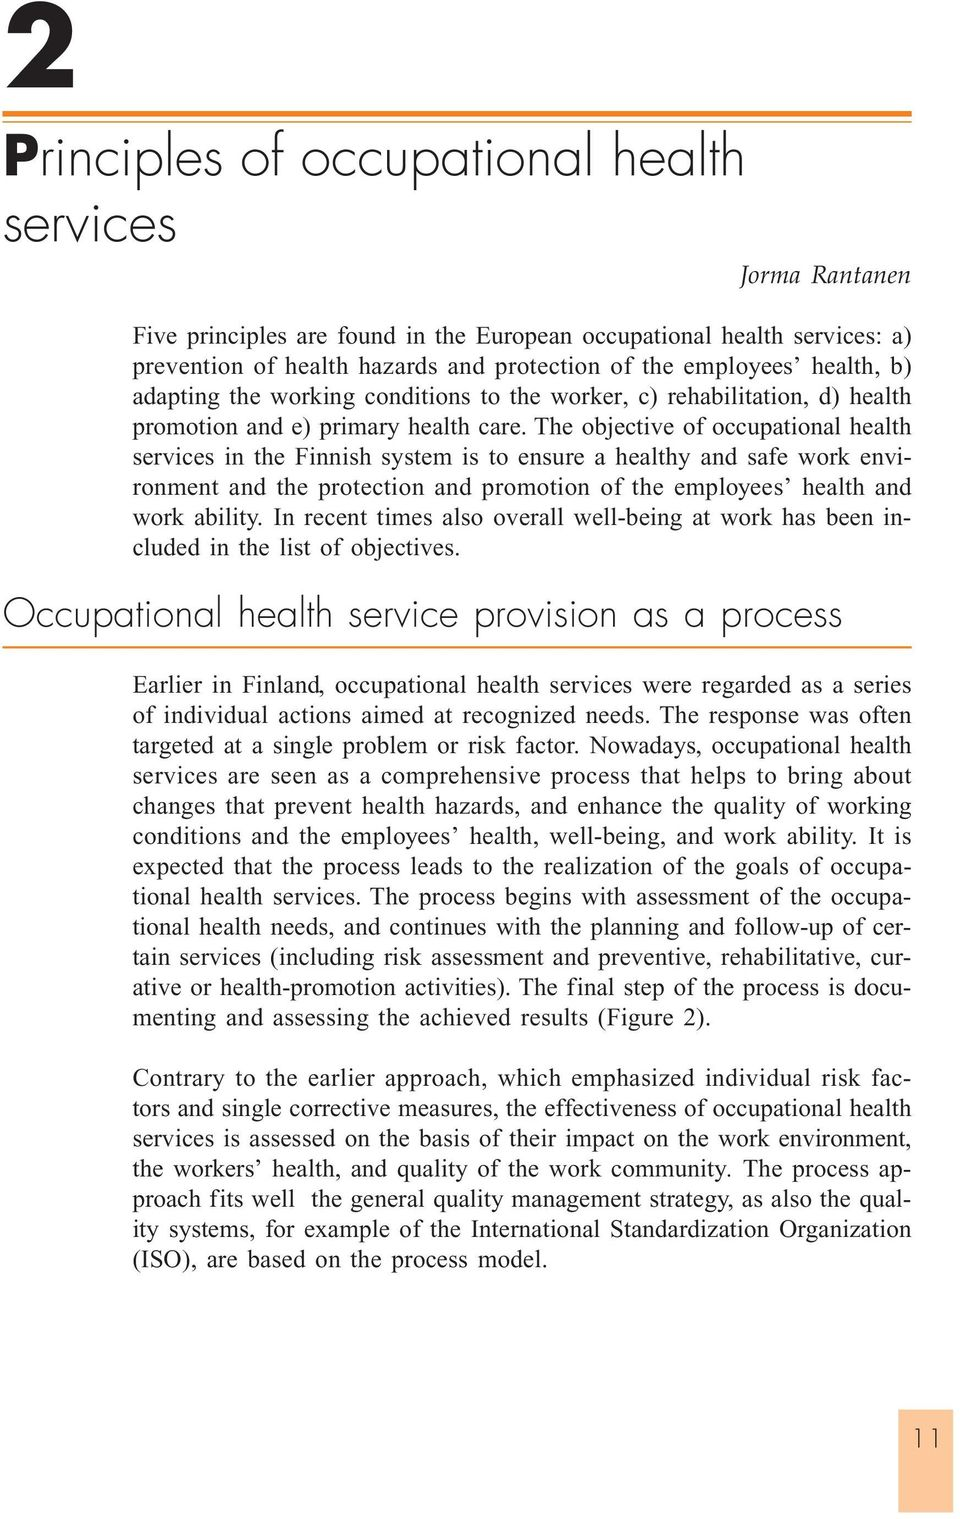 The objective of occupational health services in the Finnish system is to ensure a healthy and safe work environment and the protection and promotion of the employees health and work ability.